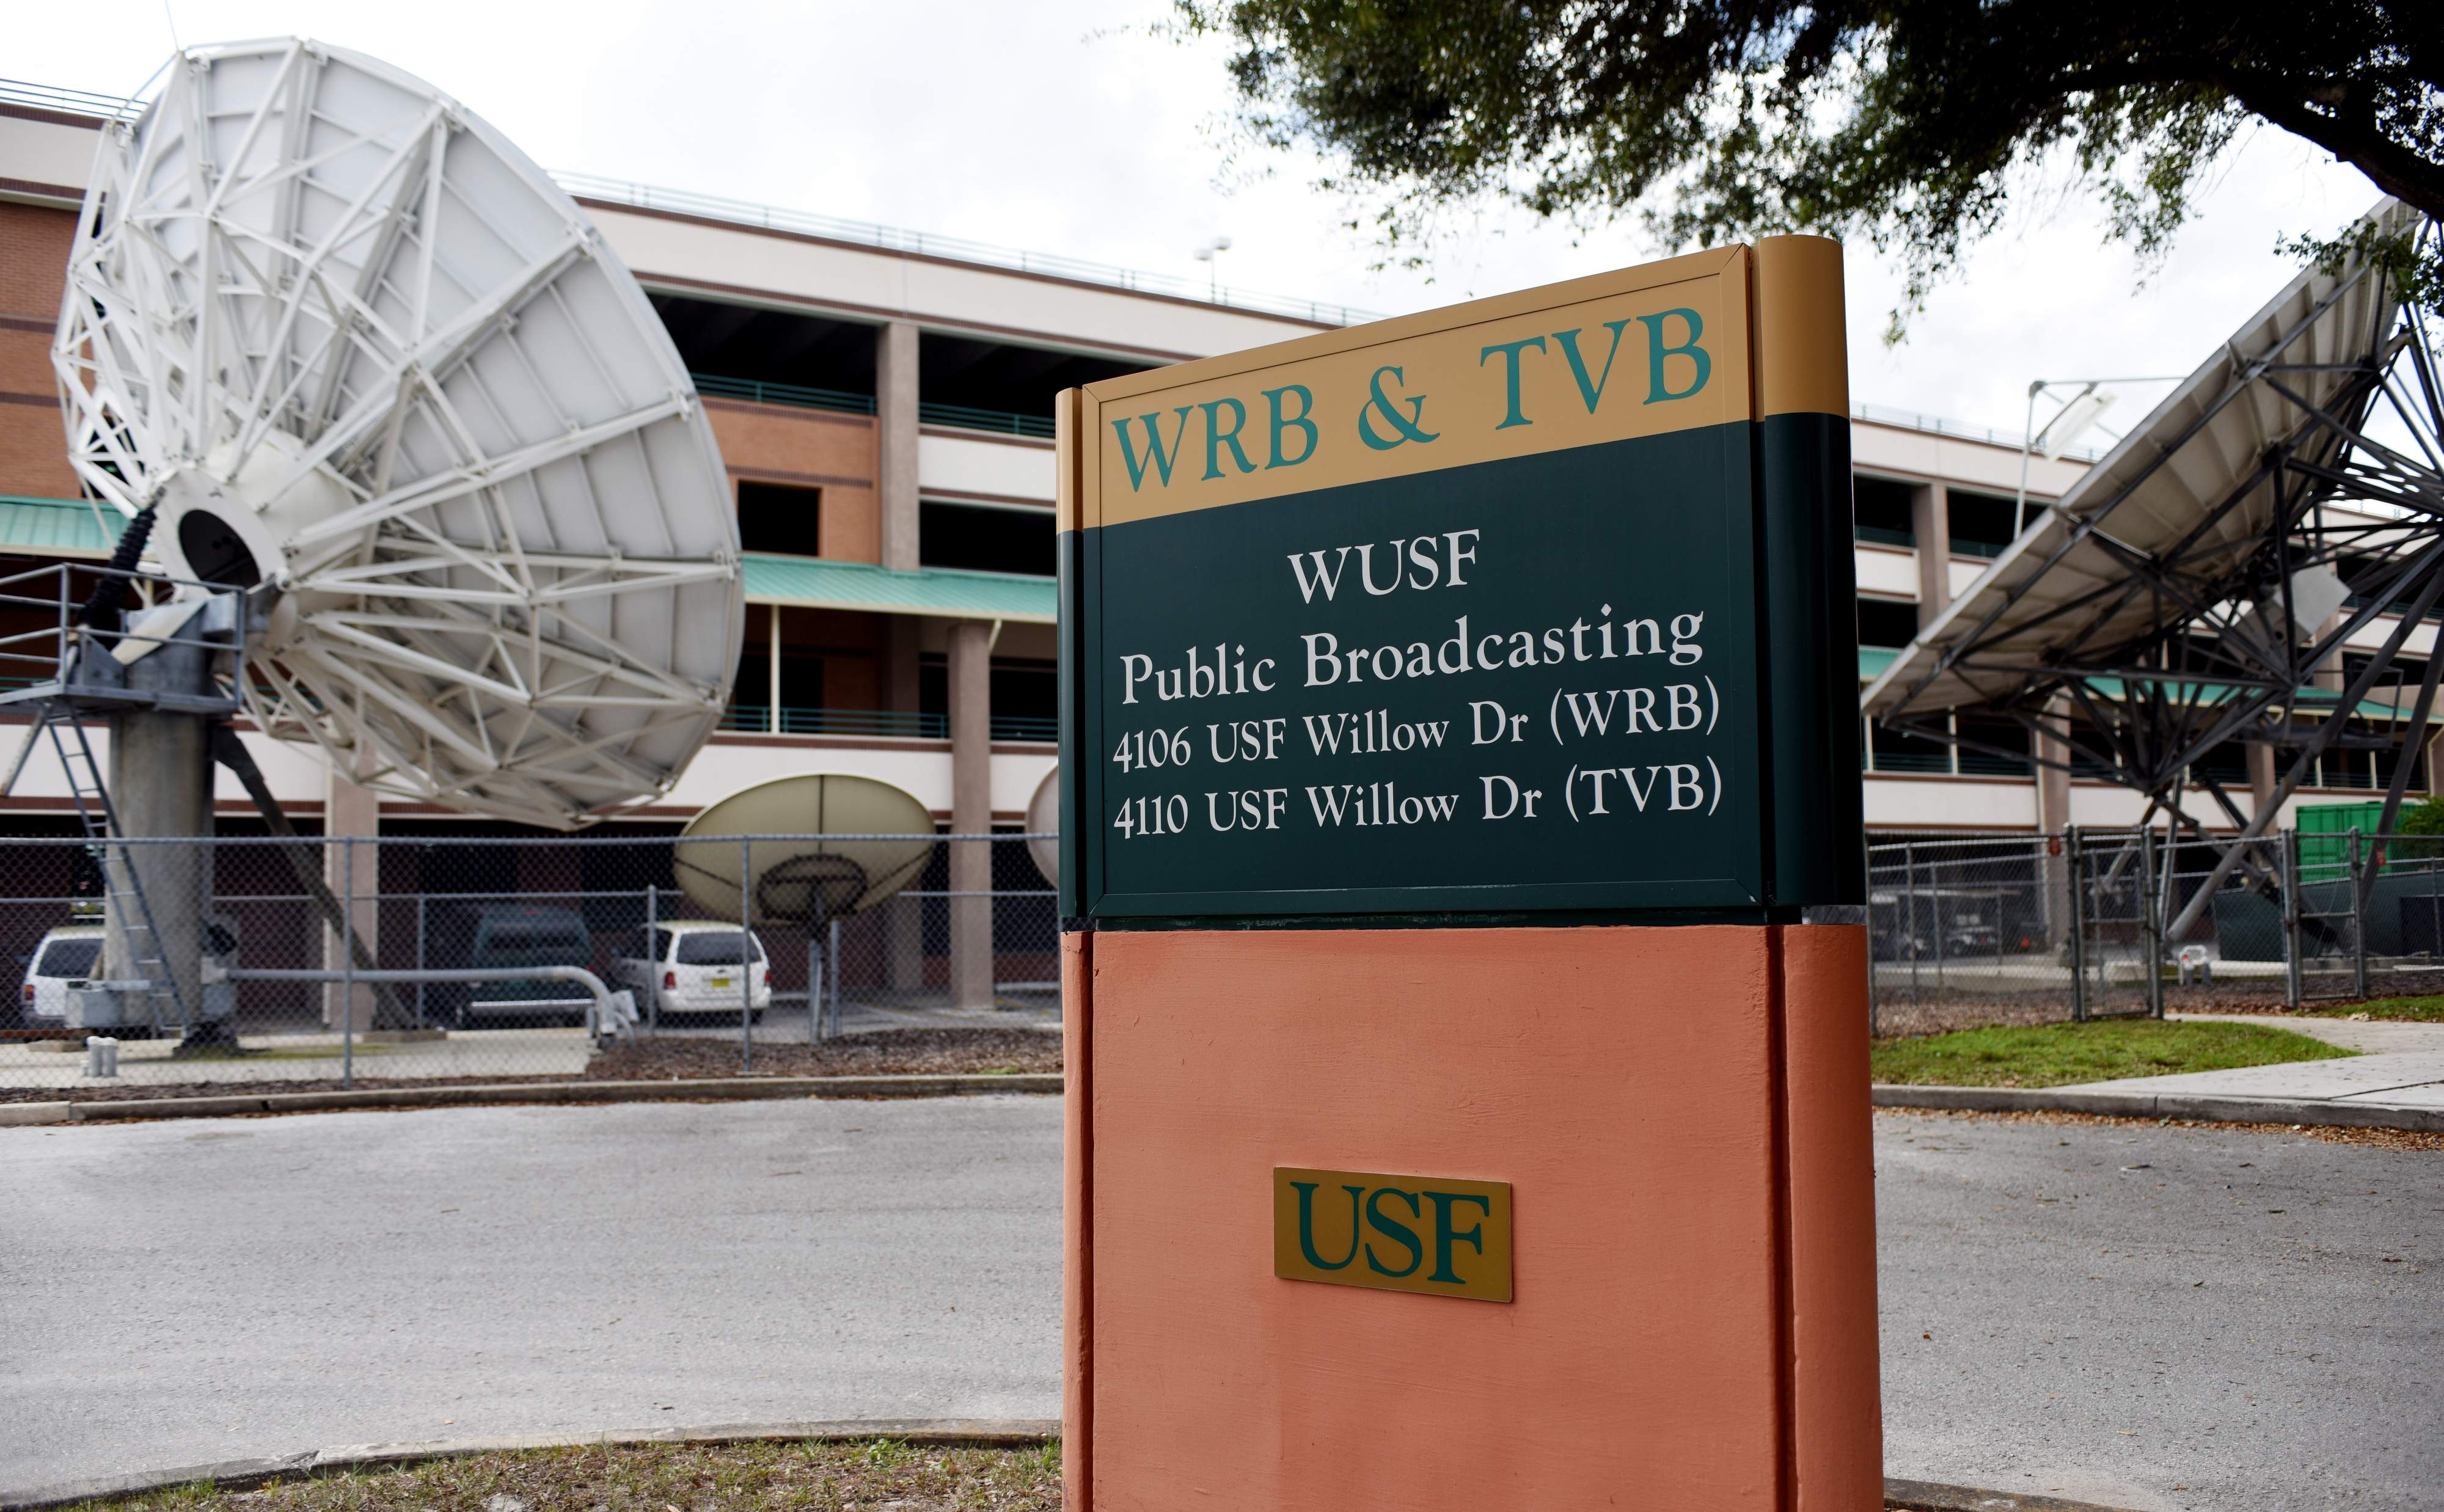 wusf-tv to go off the air after selling its license - saintpetersblog